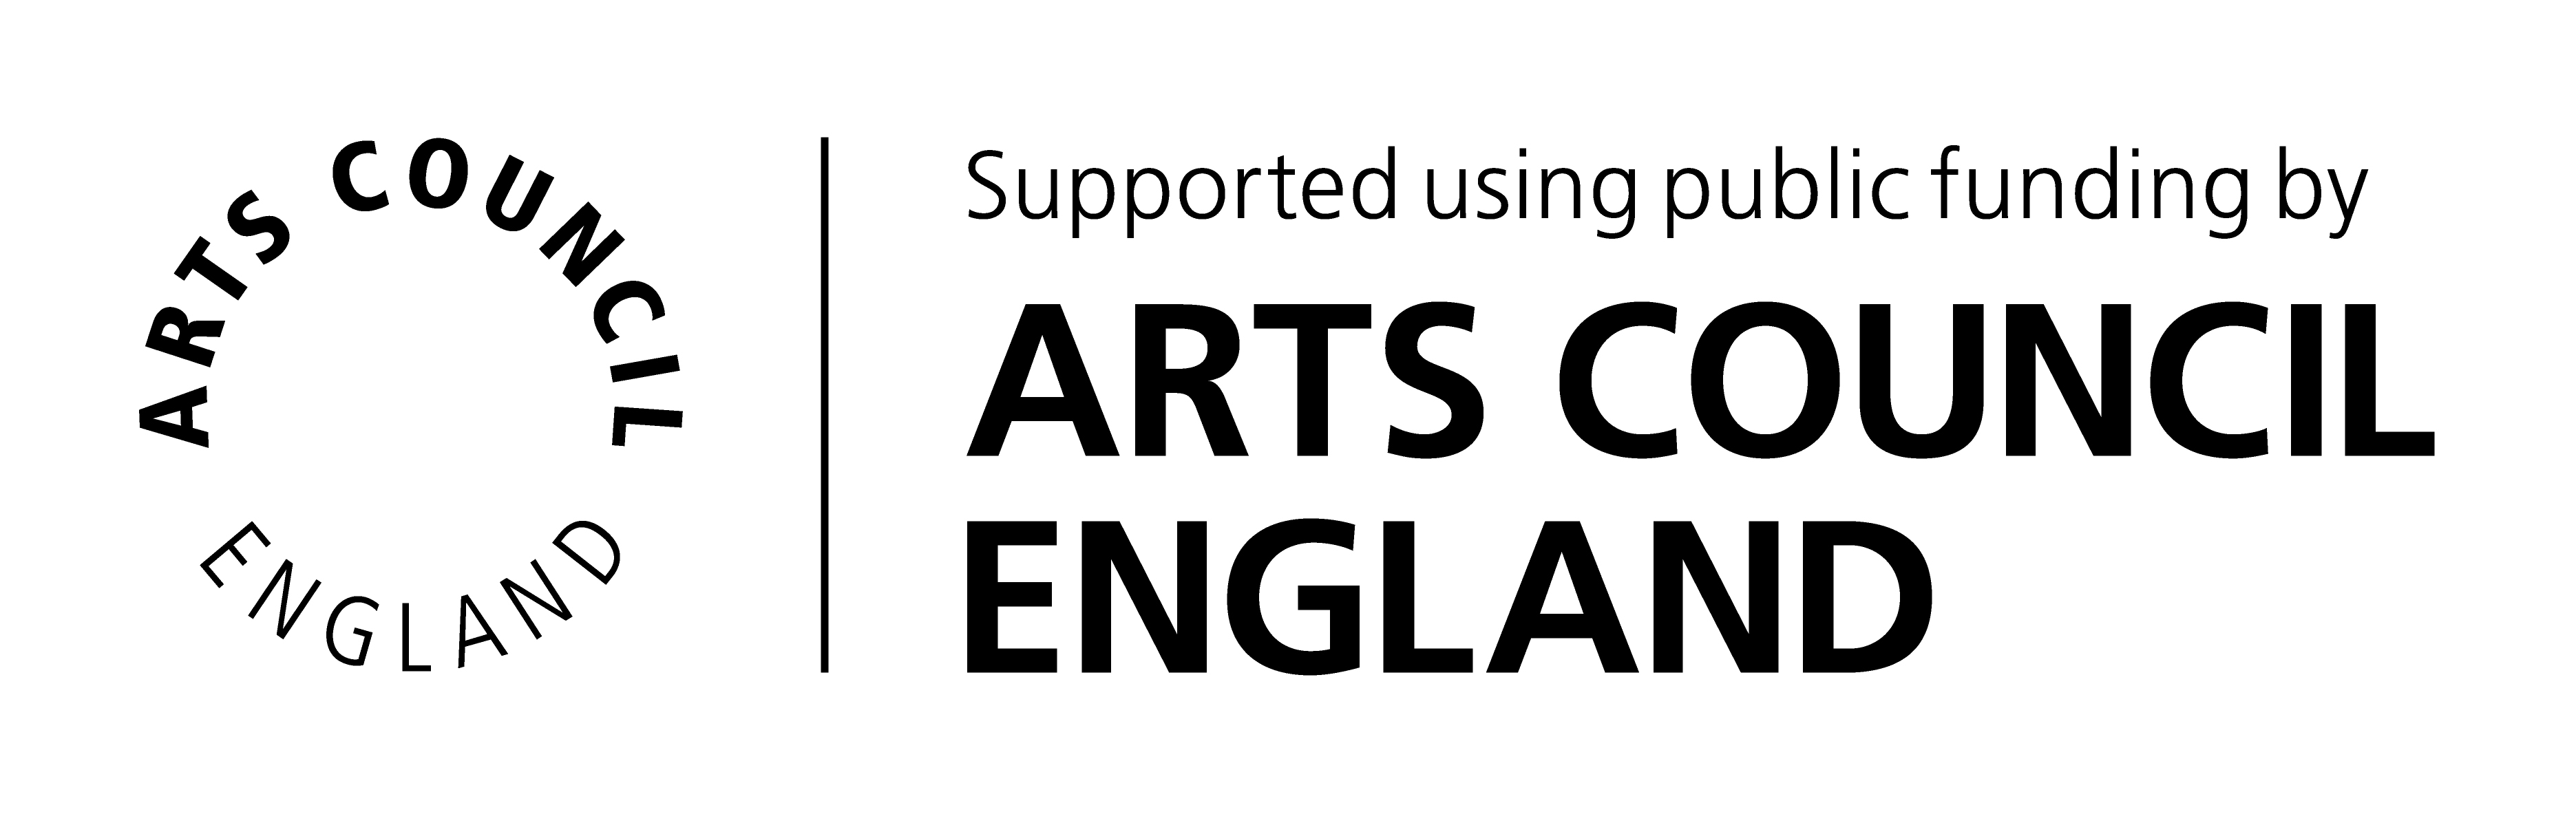 Sponsored by Arts Council England